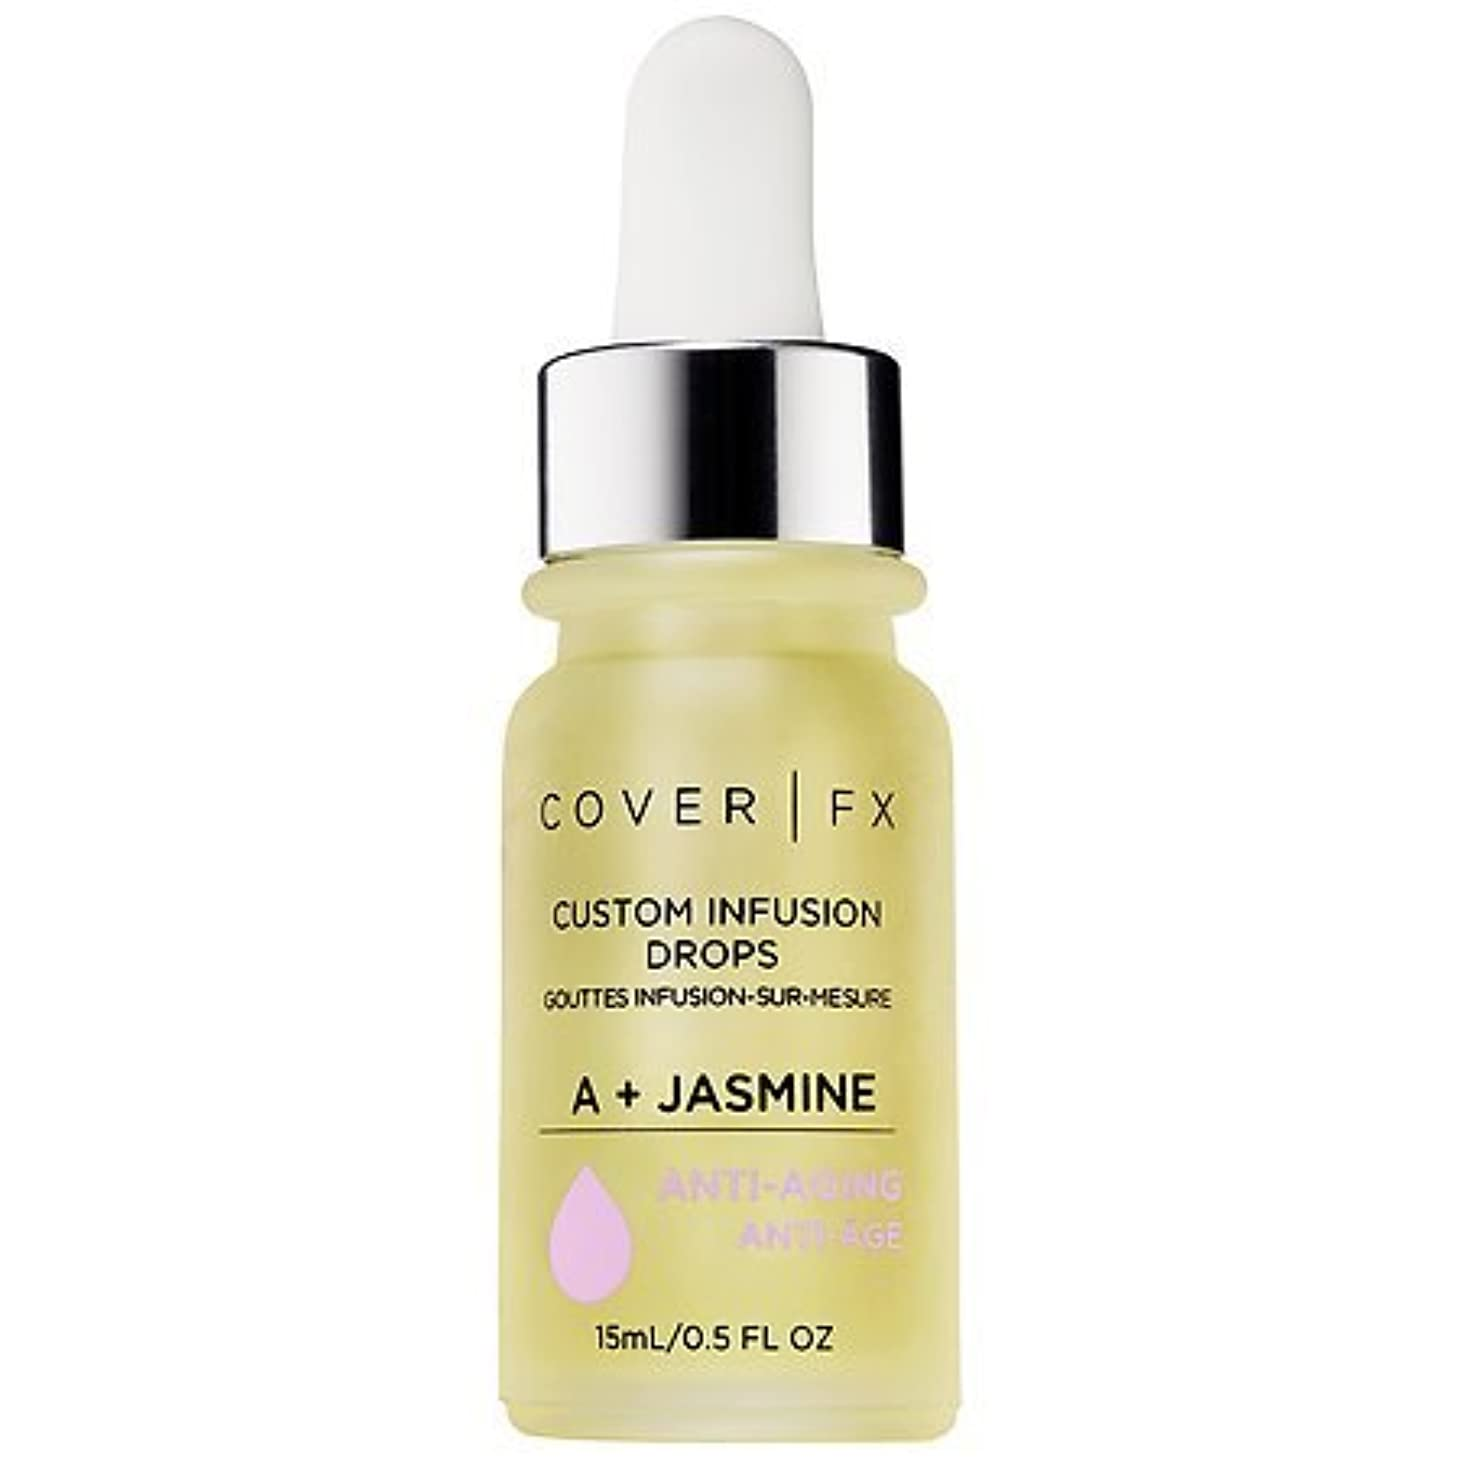 COVER FX Custom Infusion Drops 15 ML (A + Jasmine) by Cover FX